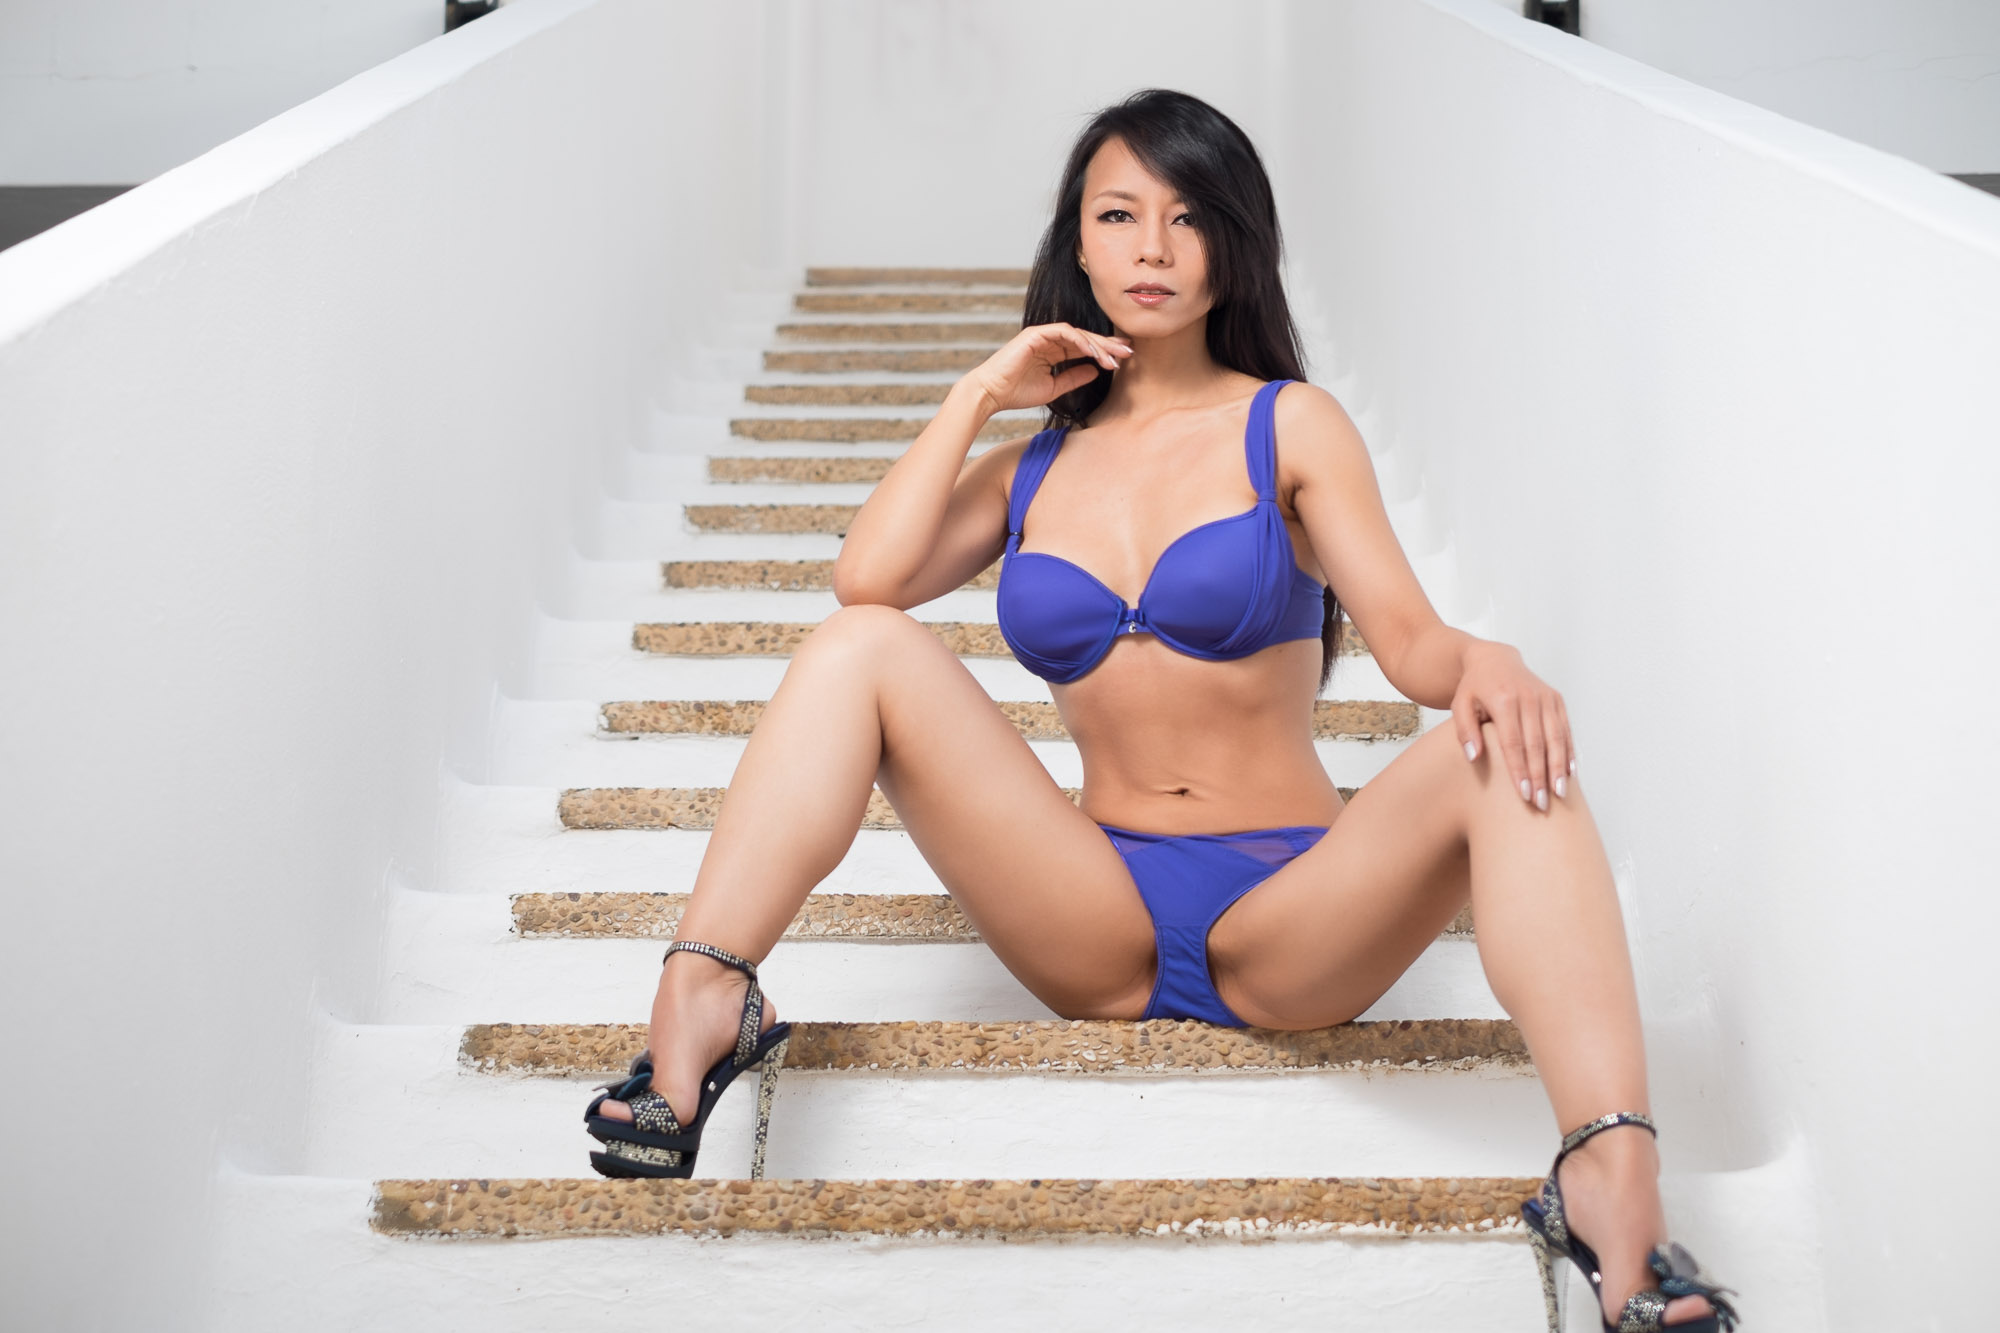 photography models pose 1